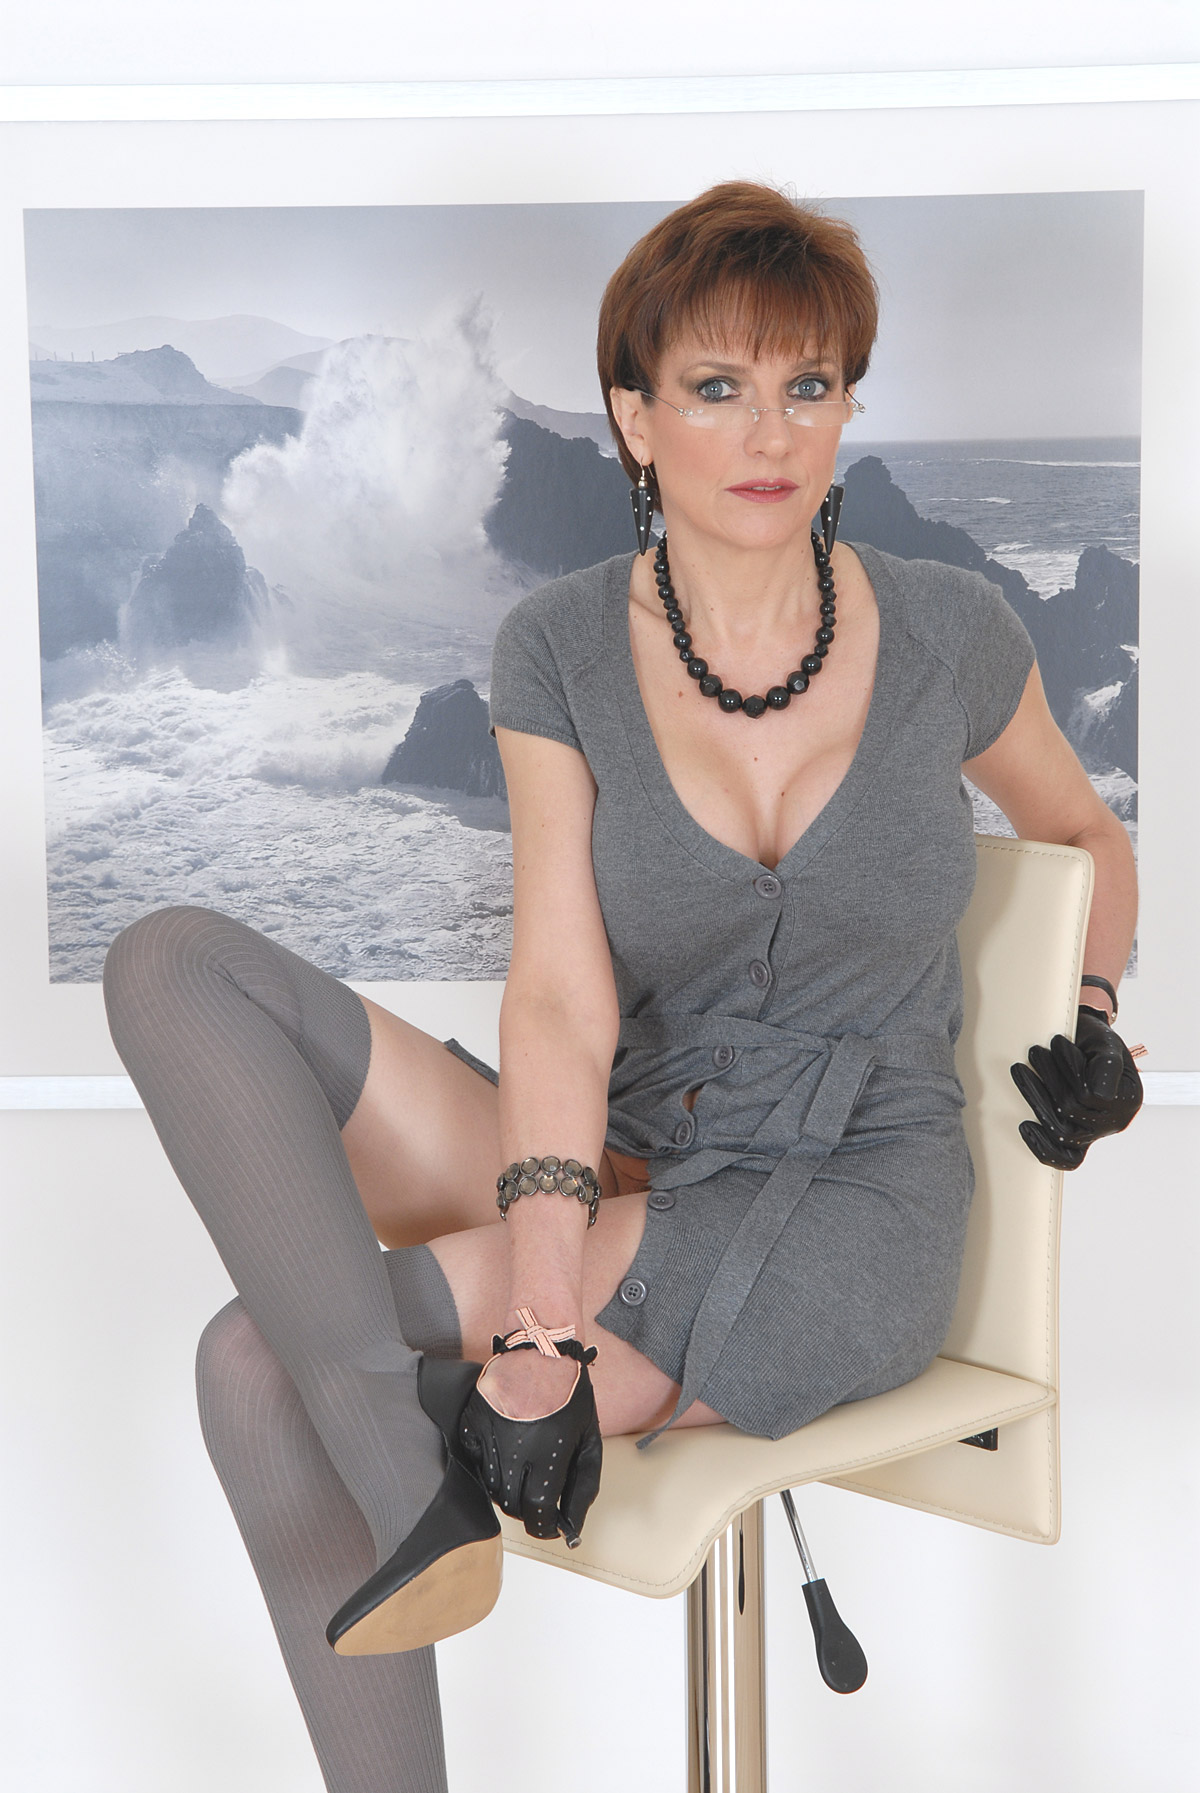 Agree, very lady sonia handjob in leather gloves